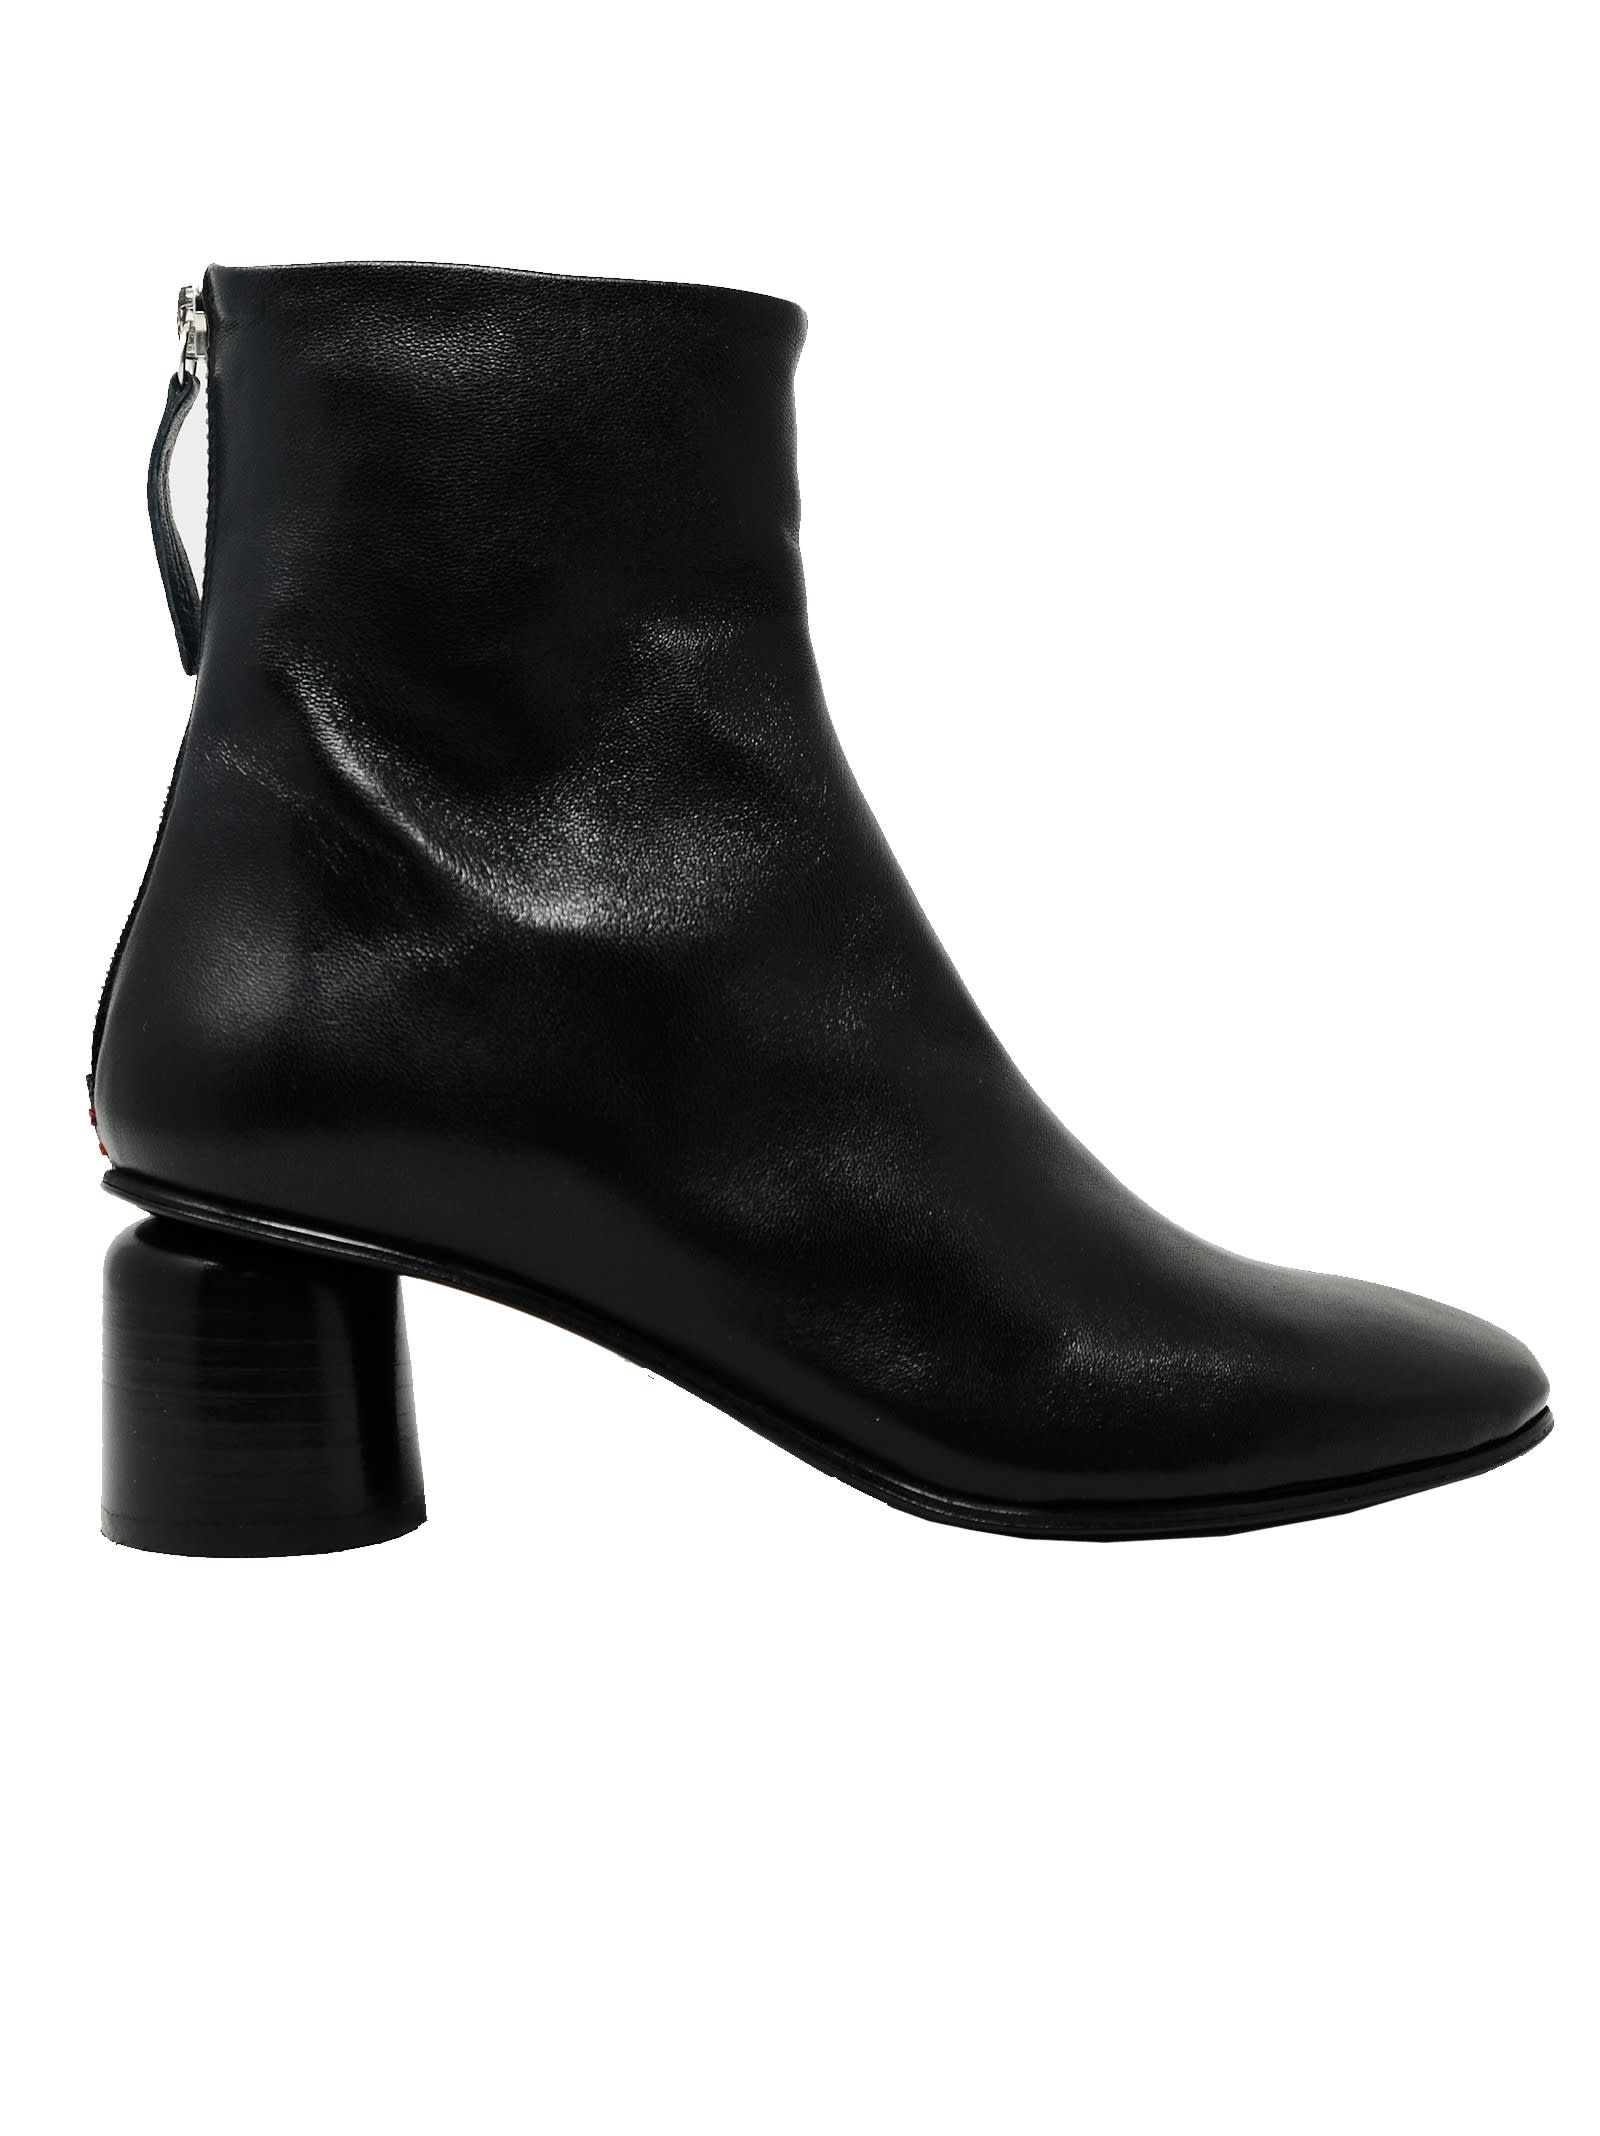 Anya13black Leather Ankle Boots